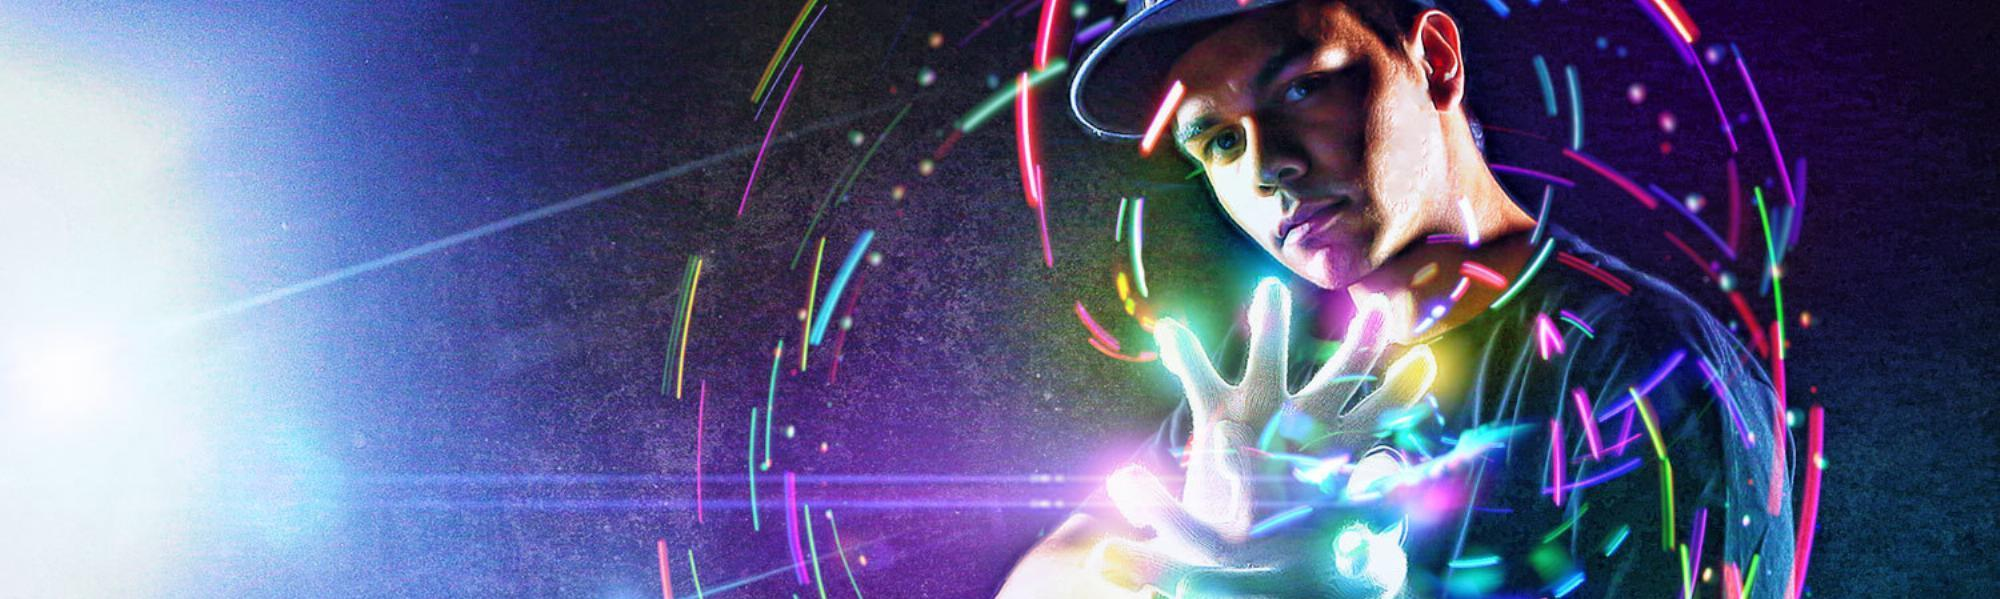 Is Gloving an Art Form Or a Drug Accessory? We Investigated the Crackdown on LED Gloves at EDM Festivals